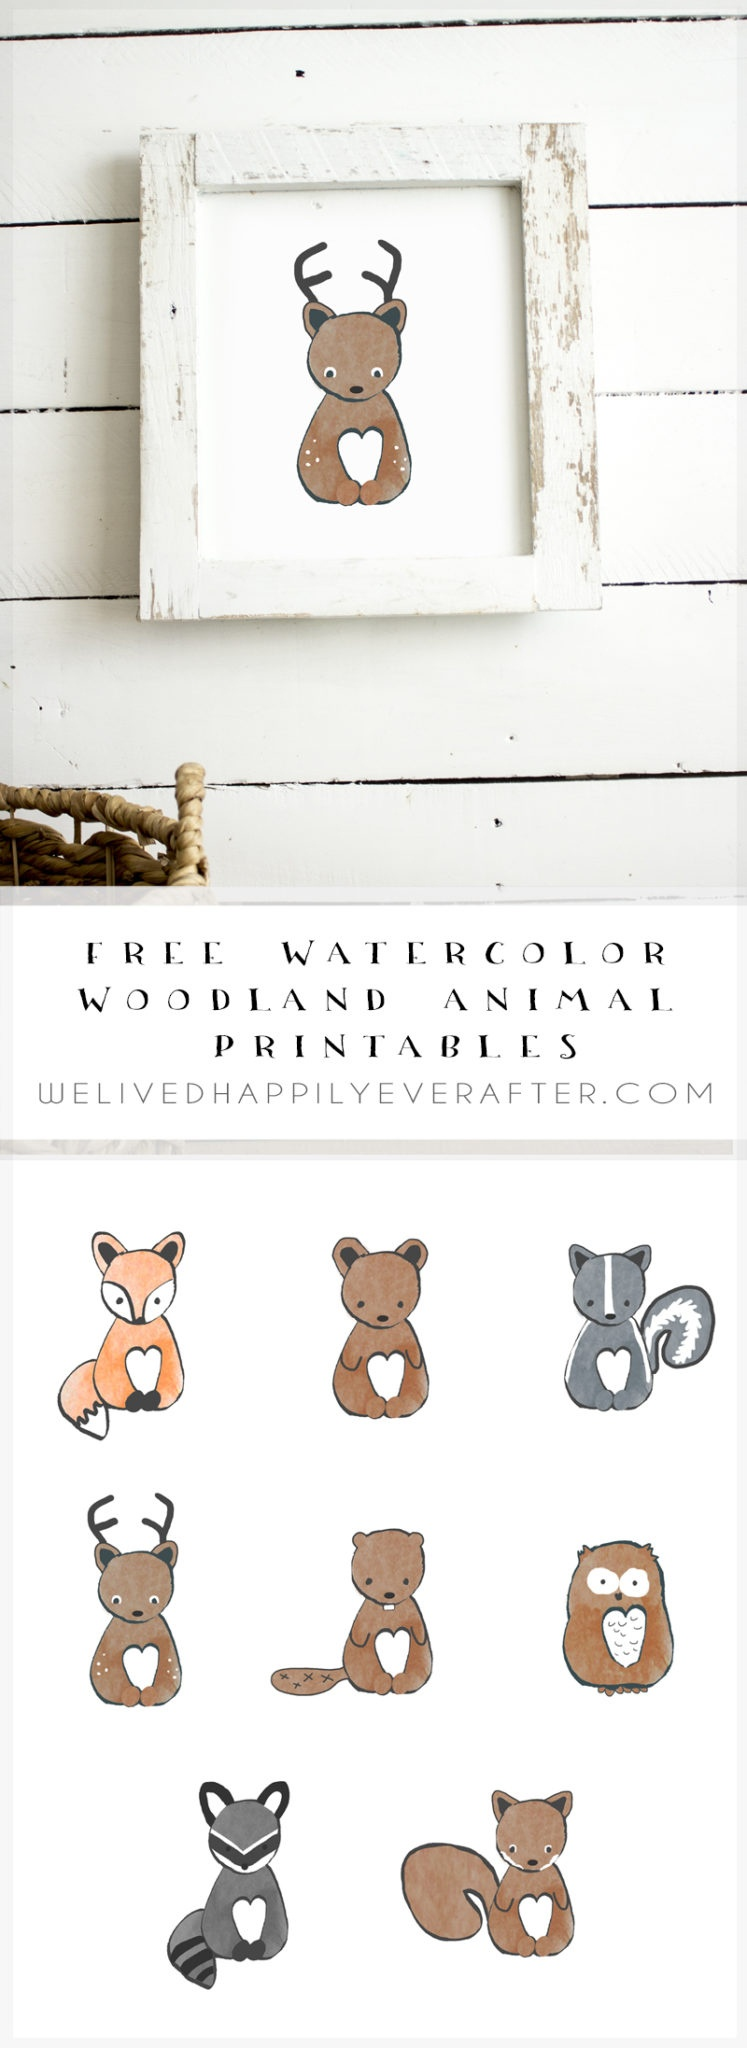 Free Watercolor Forest Woodland Animal Nursery Prints | We Lived - Free Woodland Animal Printables